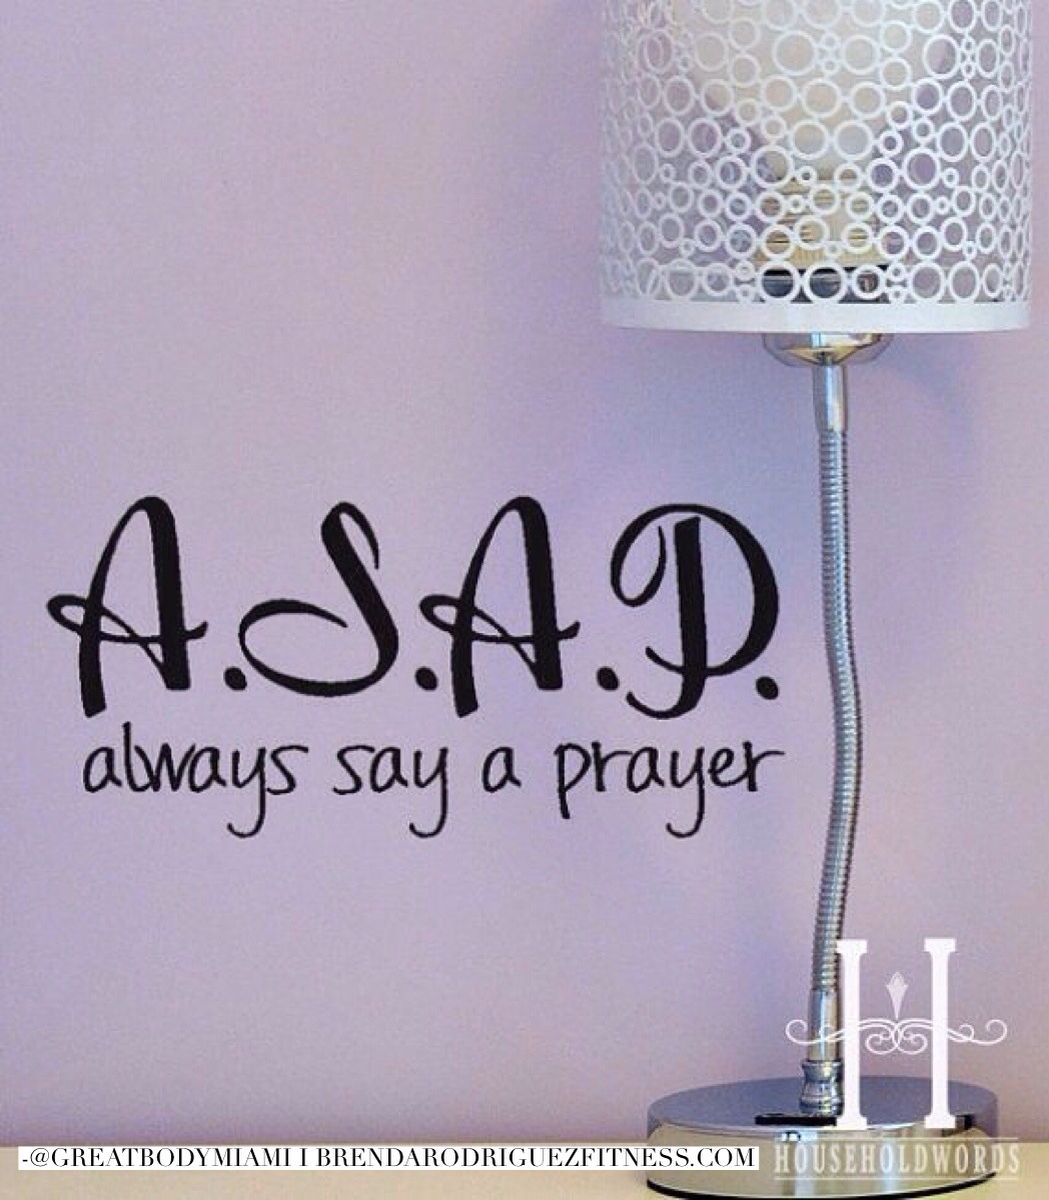 Quotes On Prayer: A.S.A.P. Always Say A Prayer....gives A Whole New Meaning